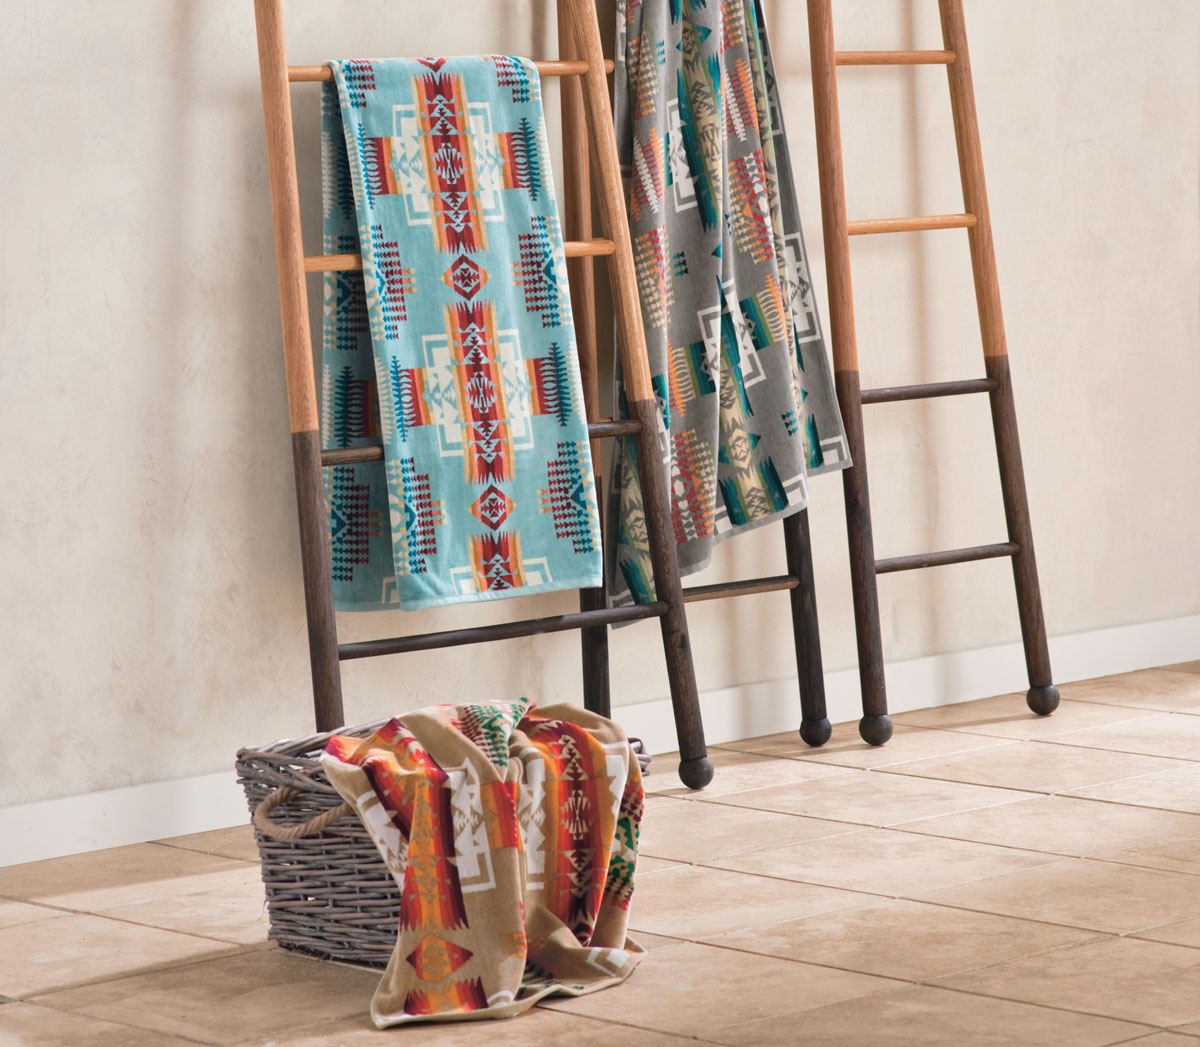 Colorful Pendleton beach and spa towels are draped on the rungs of three wooden ladders, and one is in a basket on the tile floor.